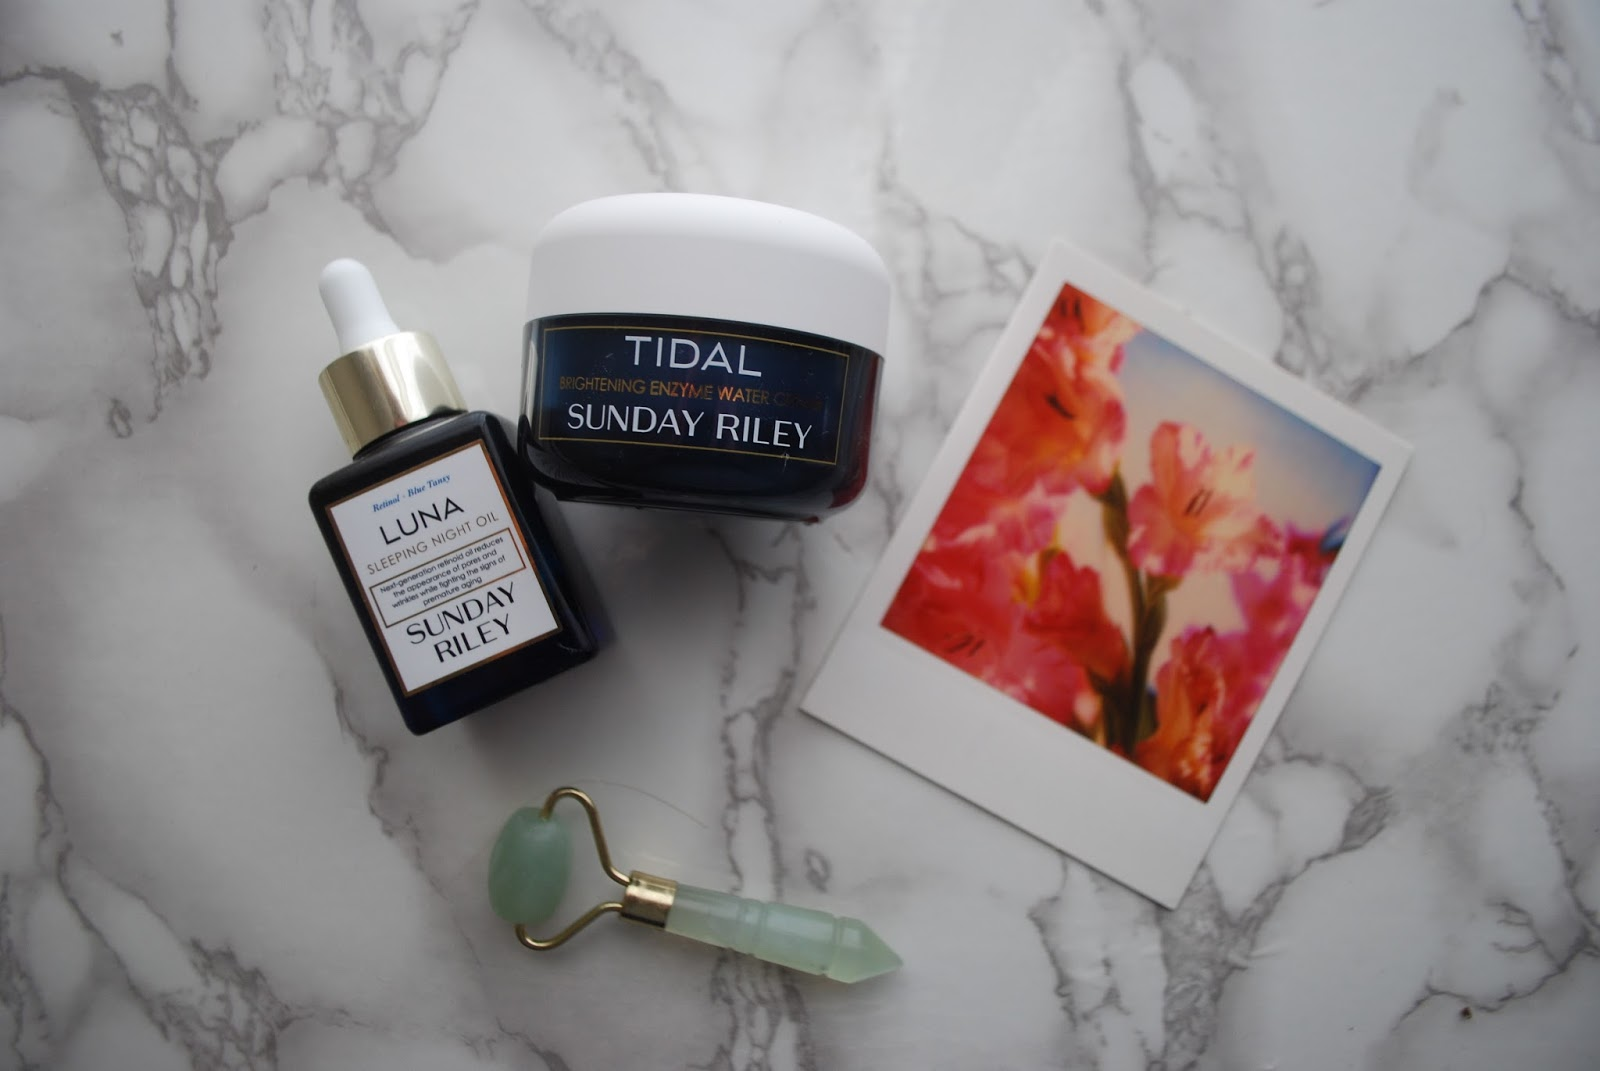 Sunday Riley nighttime skincare Sunday Riley luna oil Sunday Riley tidal cream nighttime skincare retinol